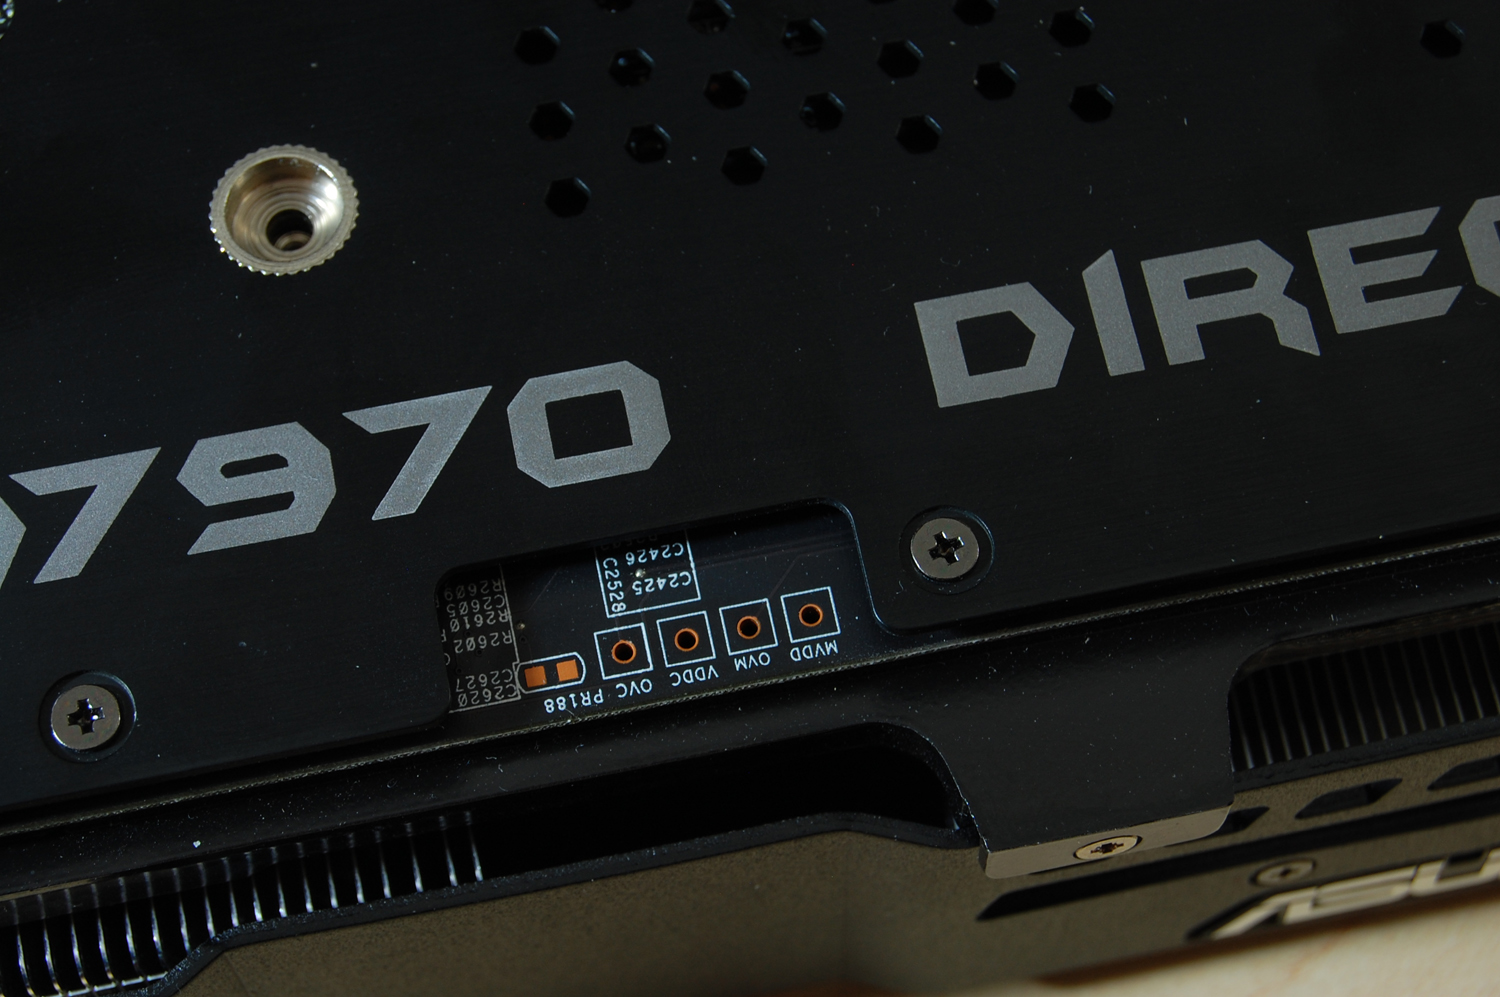 ASUS HD 7970 DCUII Review - Voltage-hardwire